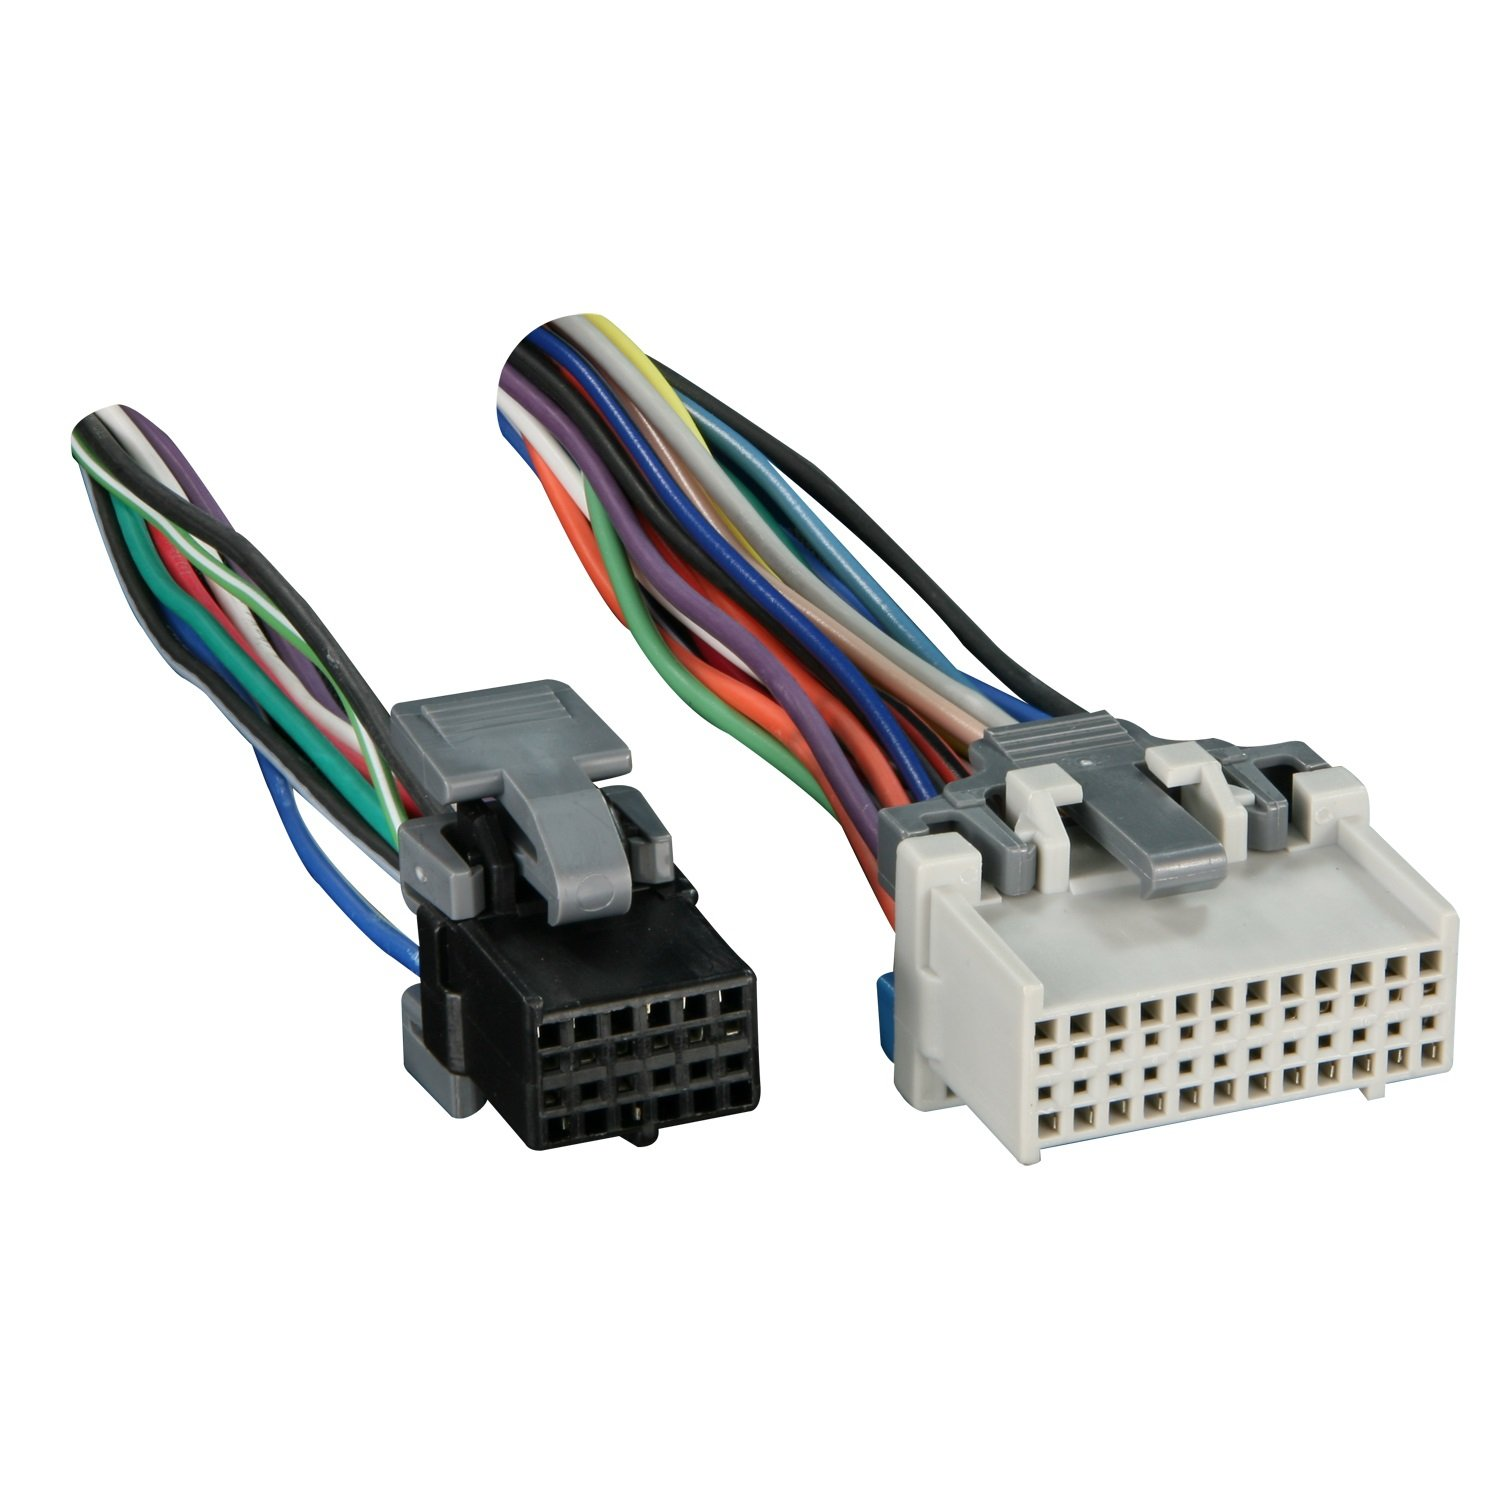 711log4bdML._SL1500_ amazon com metra turbowires 71 2003 1 wiring harness car electronics how much does it cost to replace a wiring harness at mifinder.co